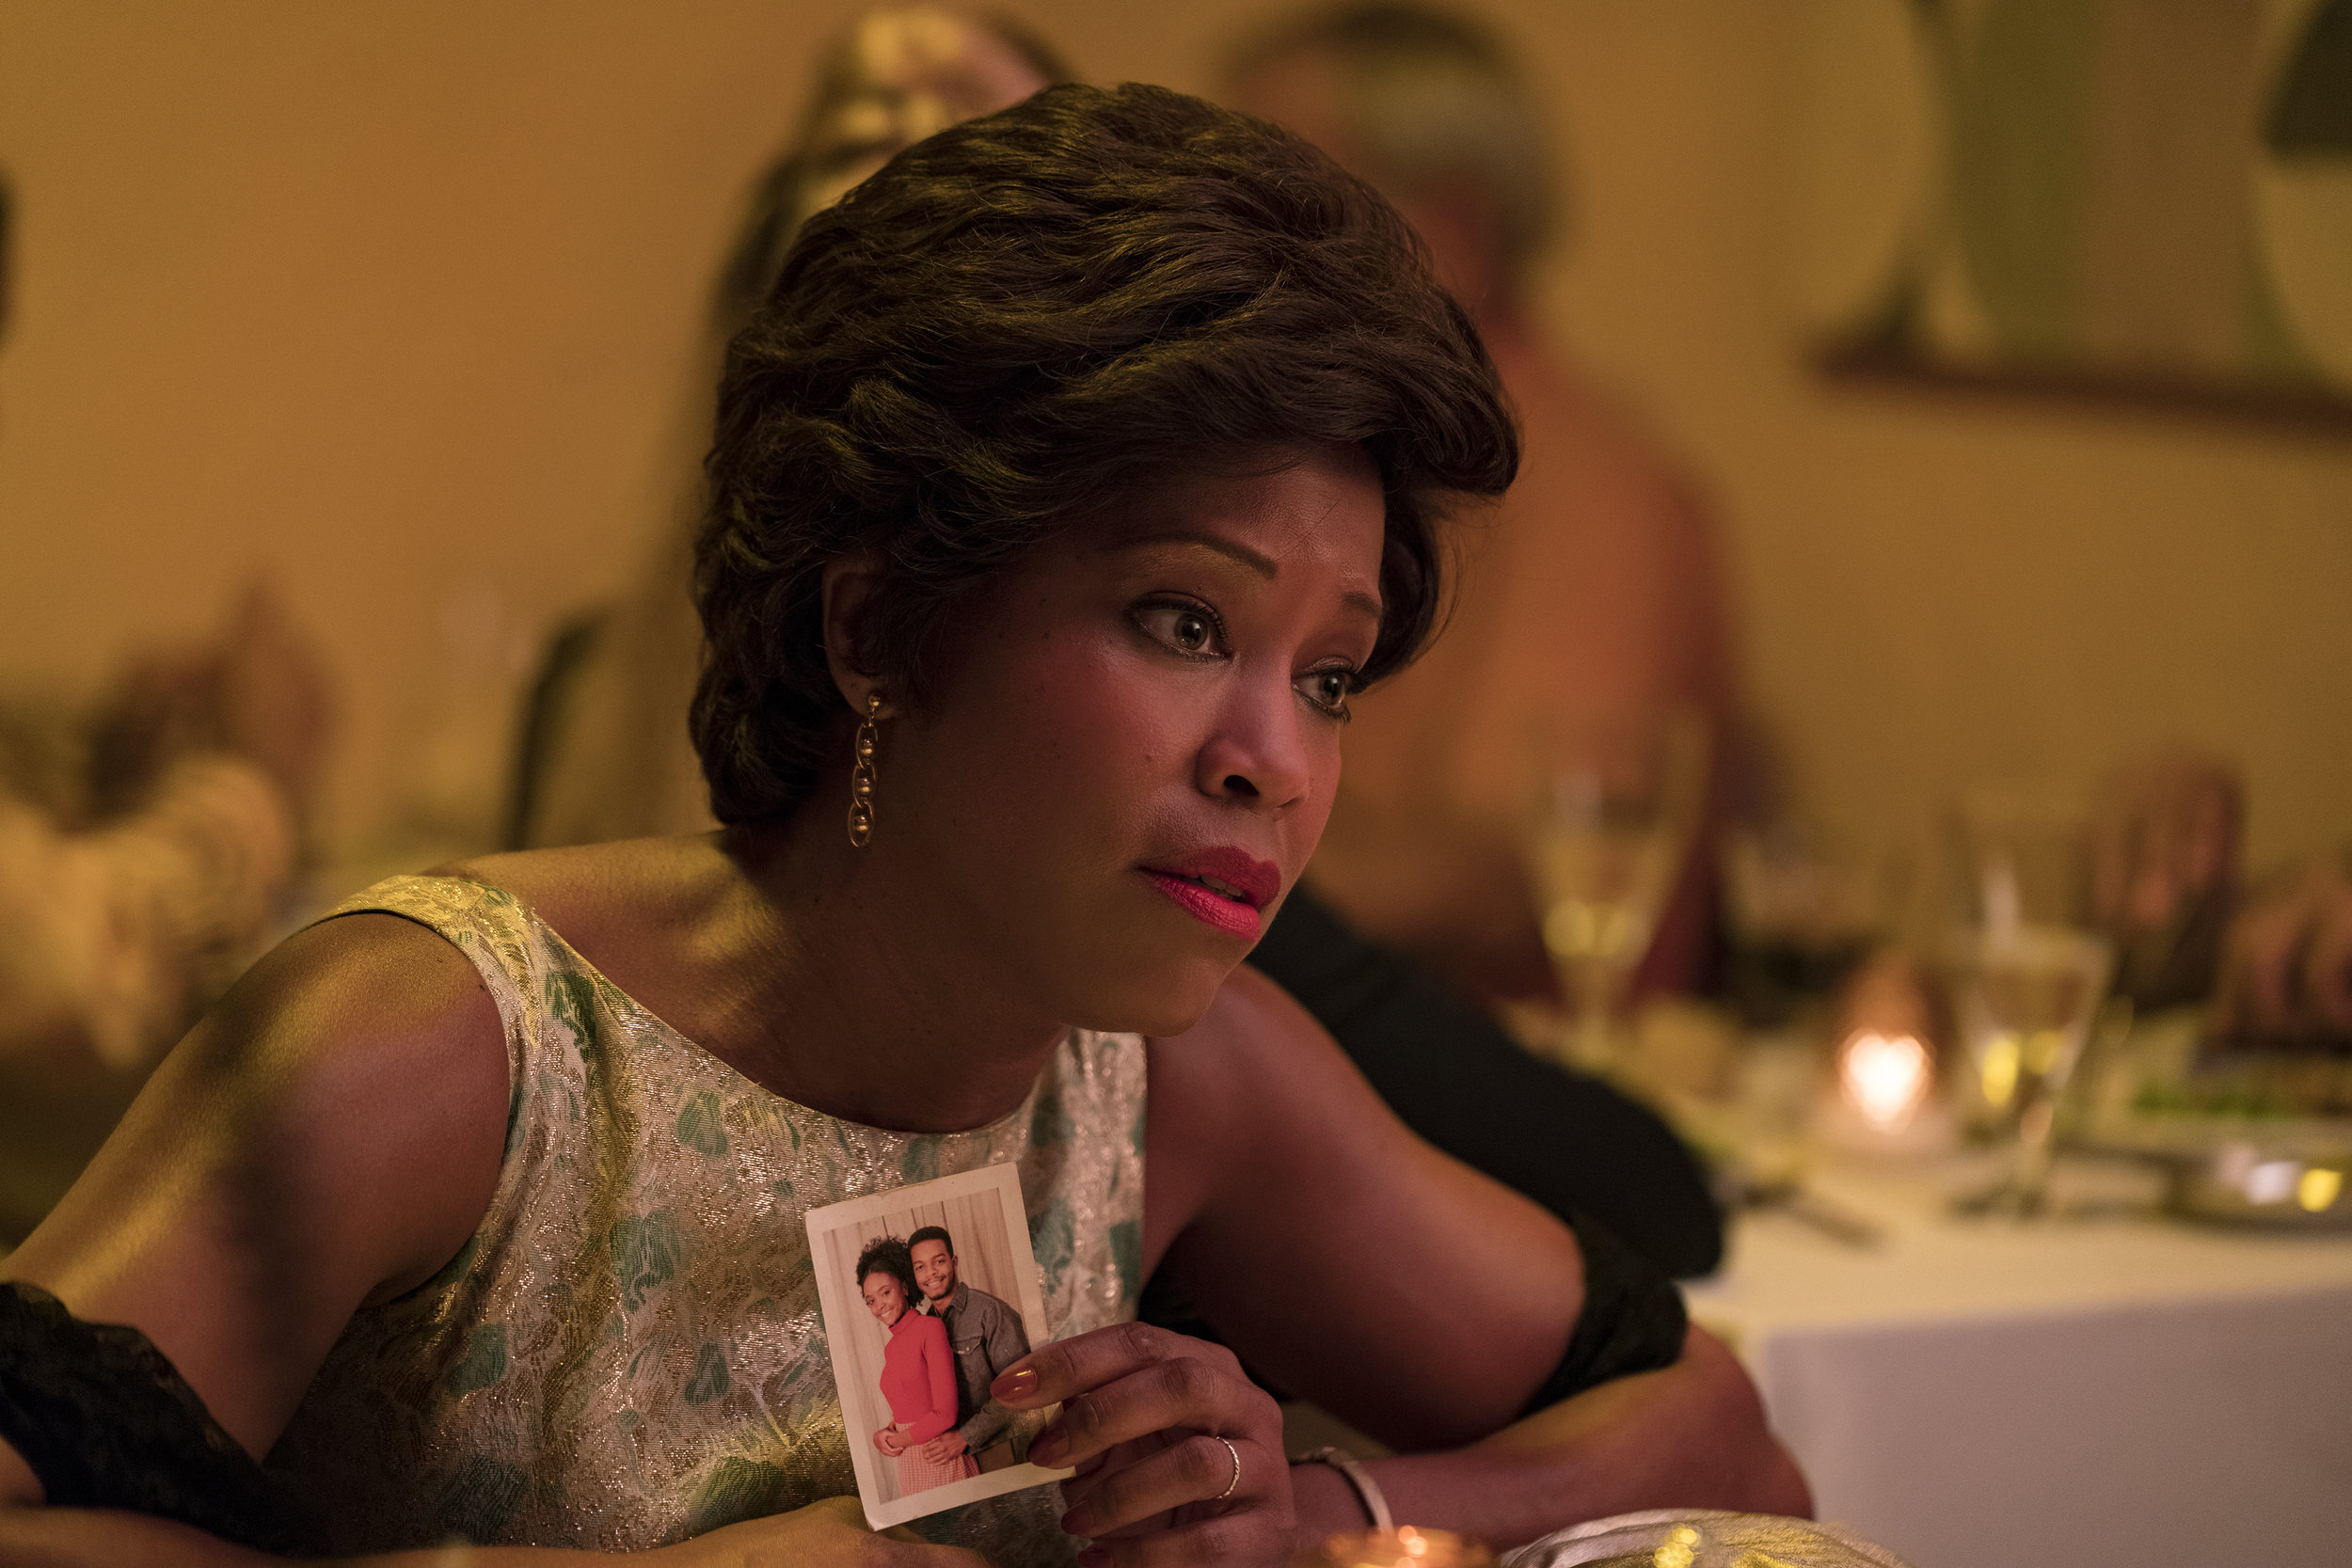 Regina King in If Beale Street Could Talk. Credit: Tatum Mangus / Annapurna Pictures; ©2018 Annapurna Releasing, LLC. All Rights Reserved.